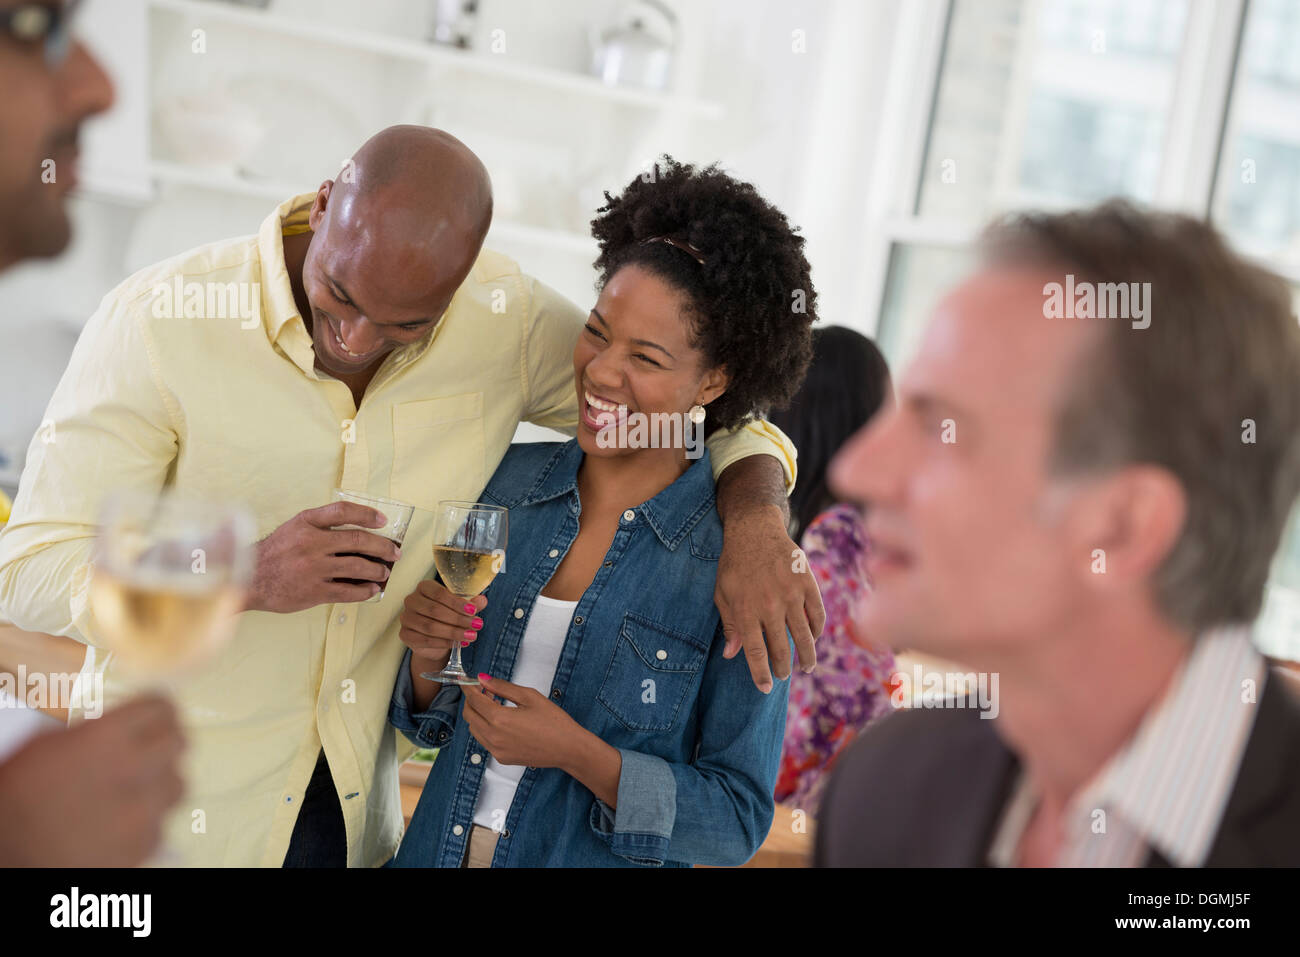 Networking party or informal event. A man and woman, with a crowd around them. - Stock Image